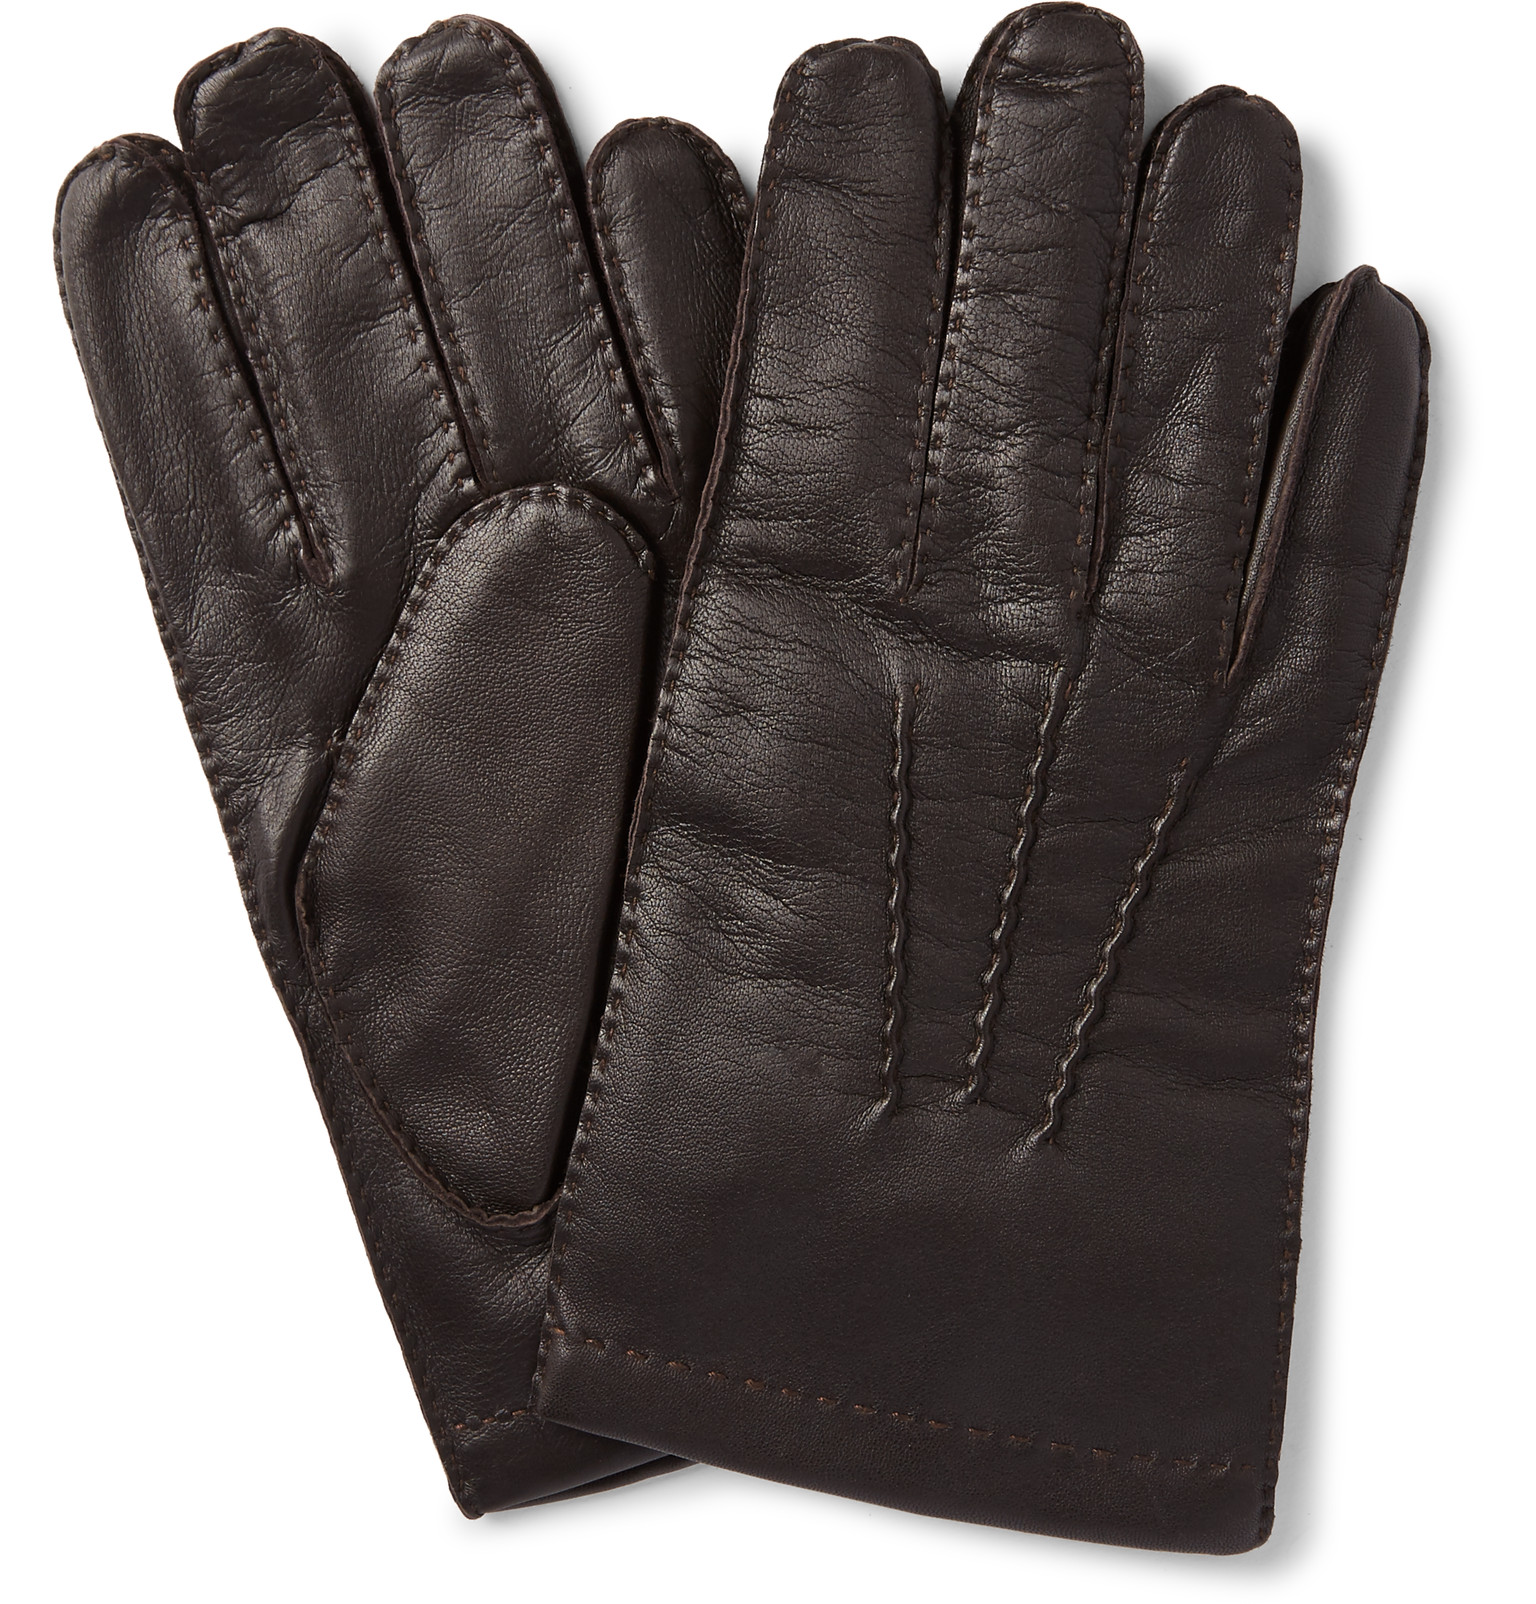 Mens leather gloves gq - Dents Shaftesbury Touchscreen Cashmere Lined Leather Gloves